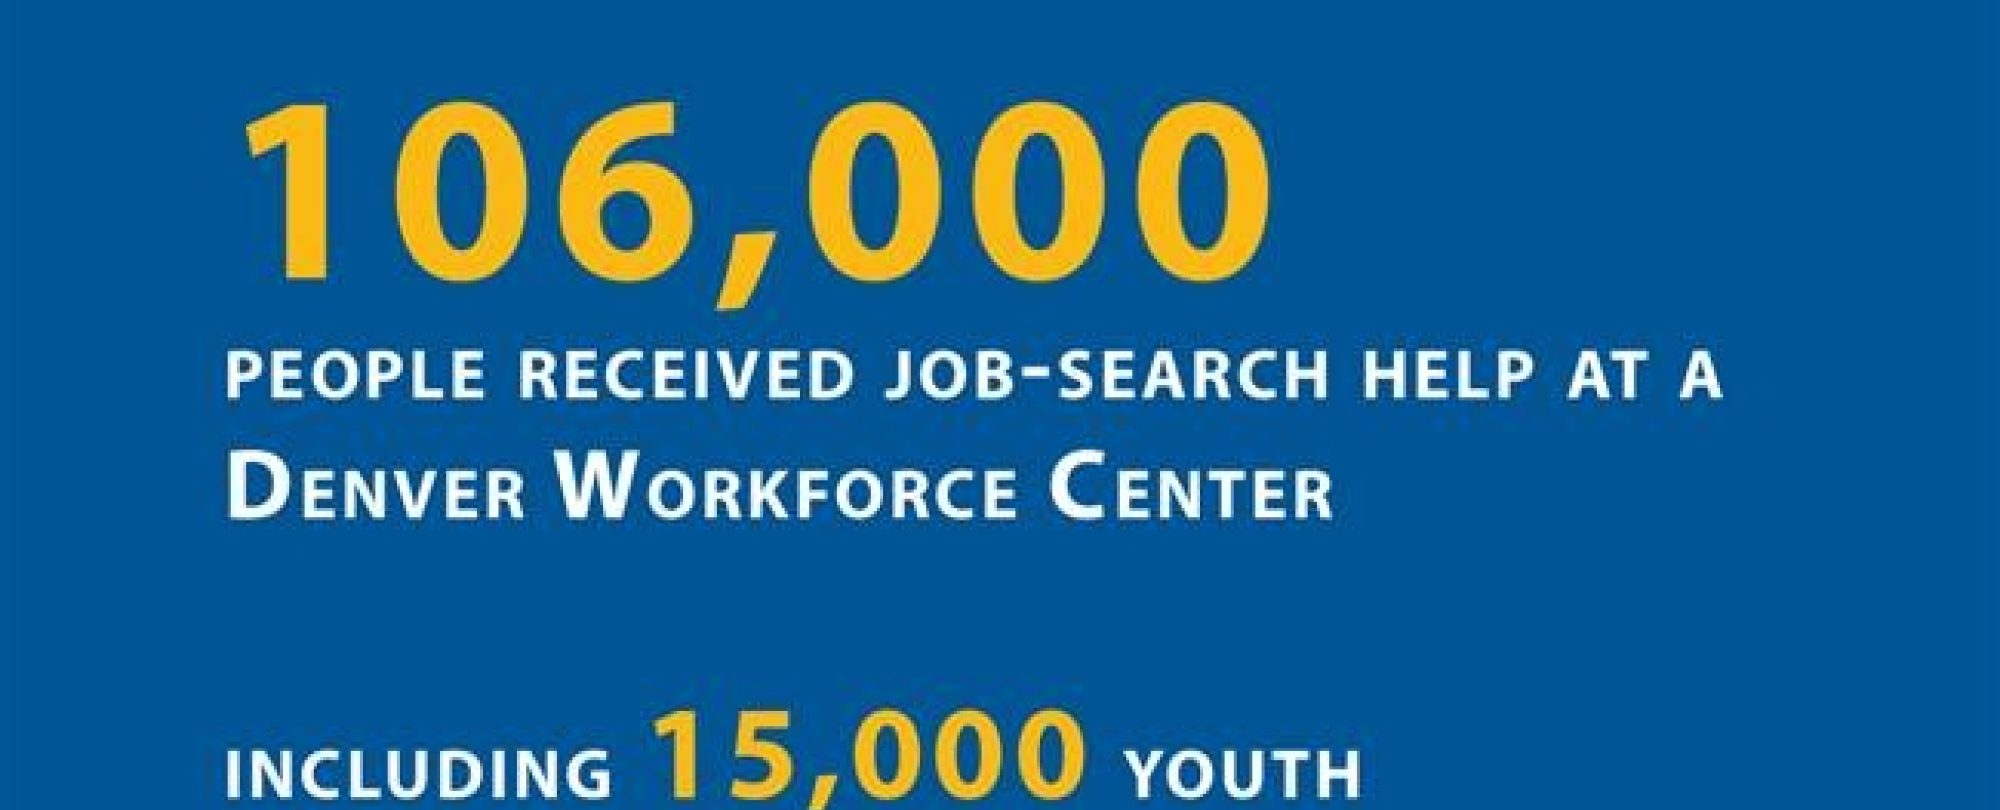 106,000 people received job-search help at a Denver Workforce Center.